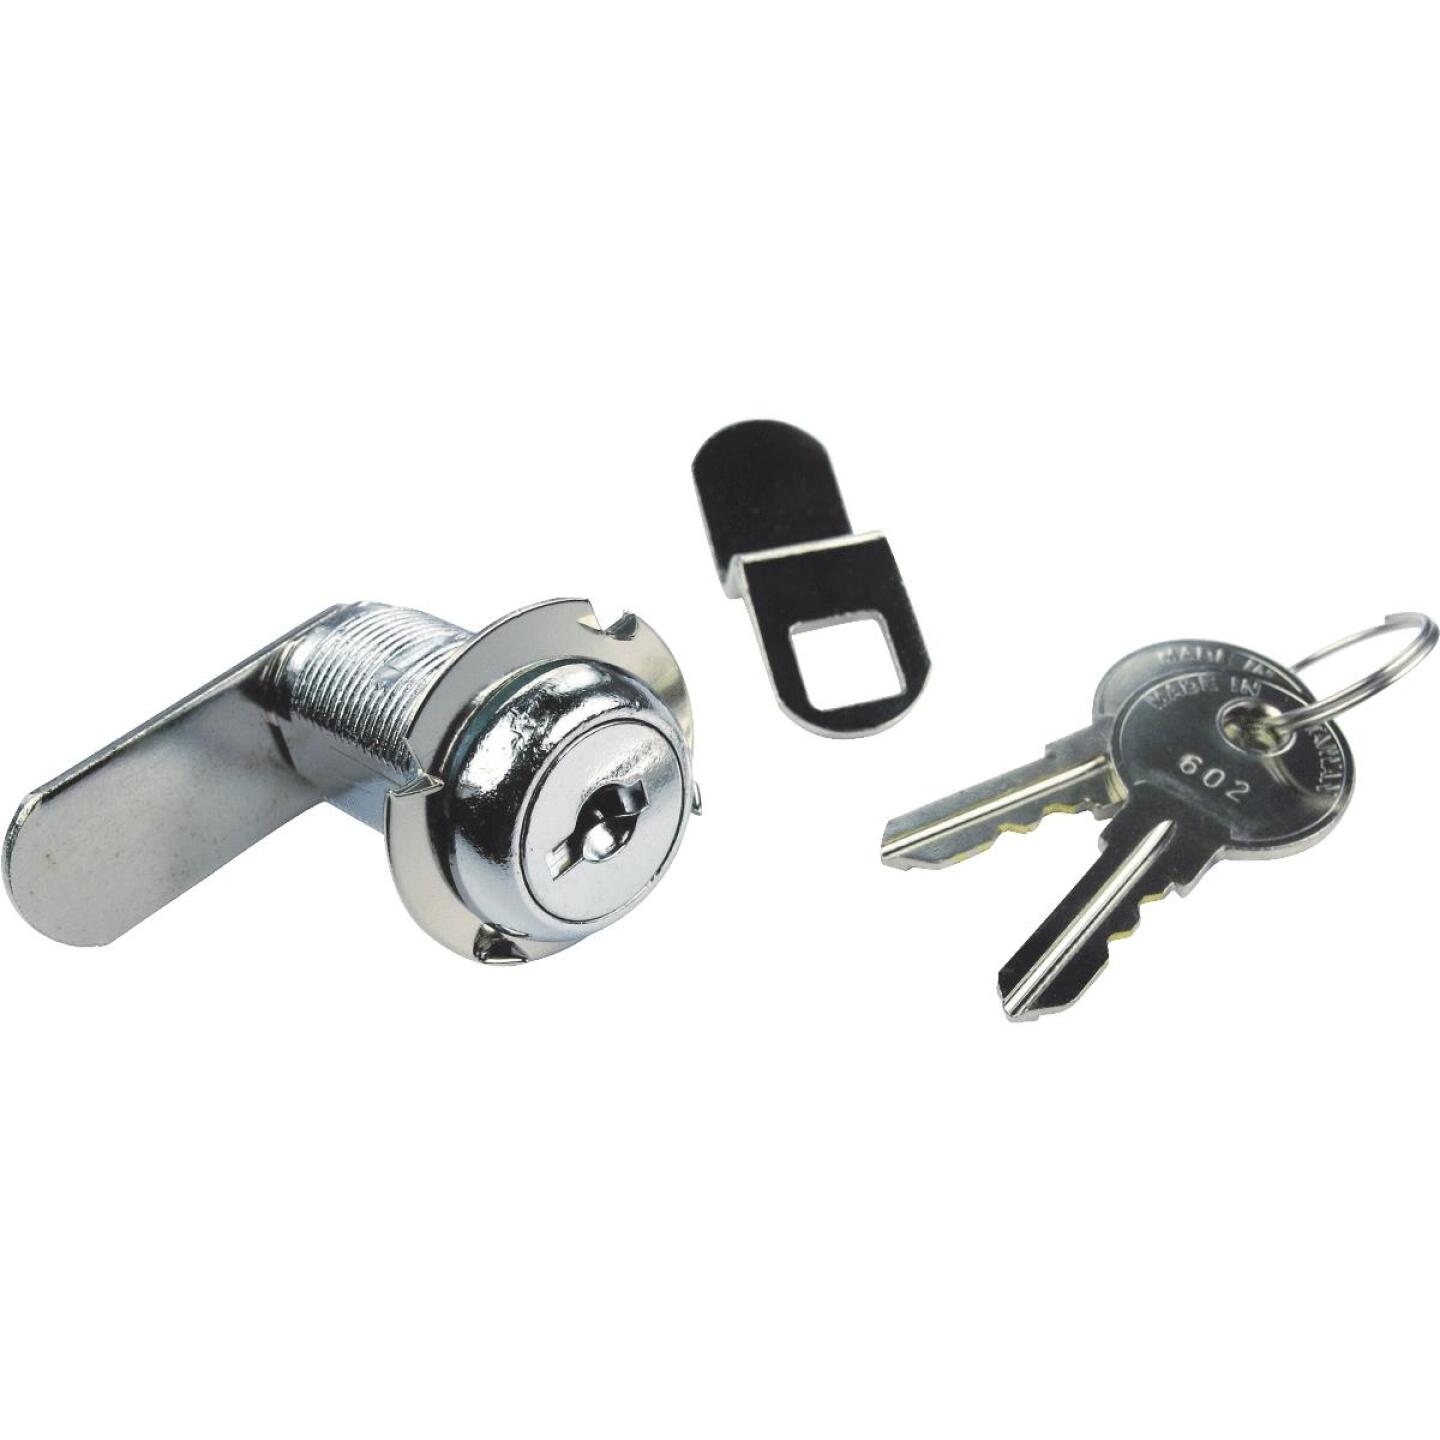 Seachoice 1-1/8 In. Chrome Finished Steel Cam Lock Image 1